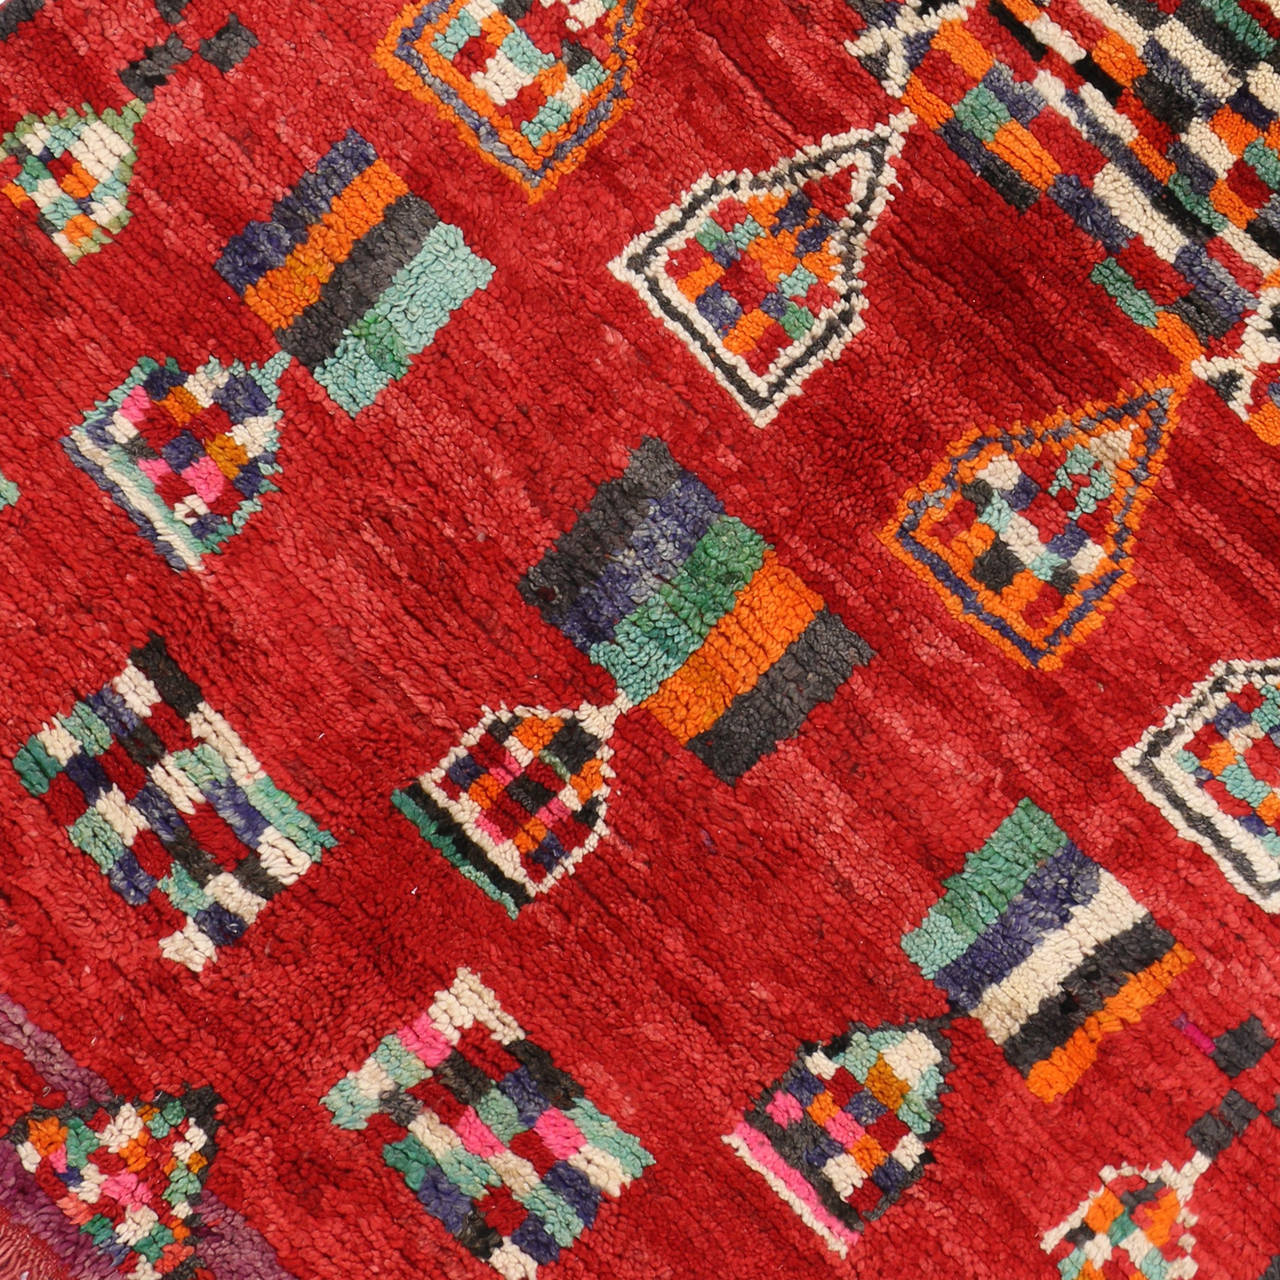 Hand-Knotted Vintage Berber Moroccan Rug with Modern Tribal Style For Sale